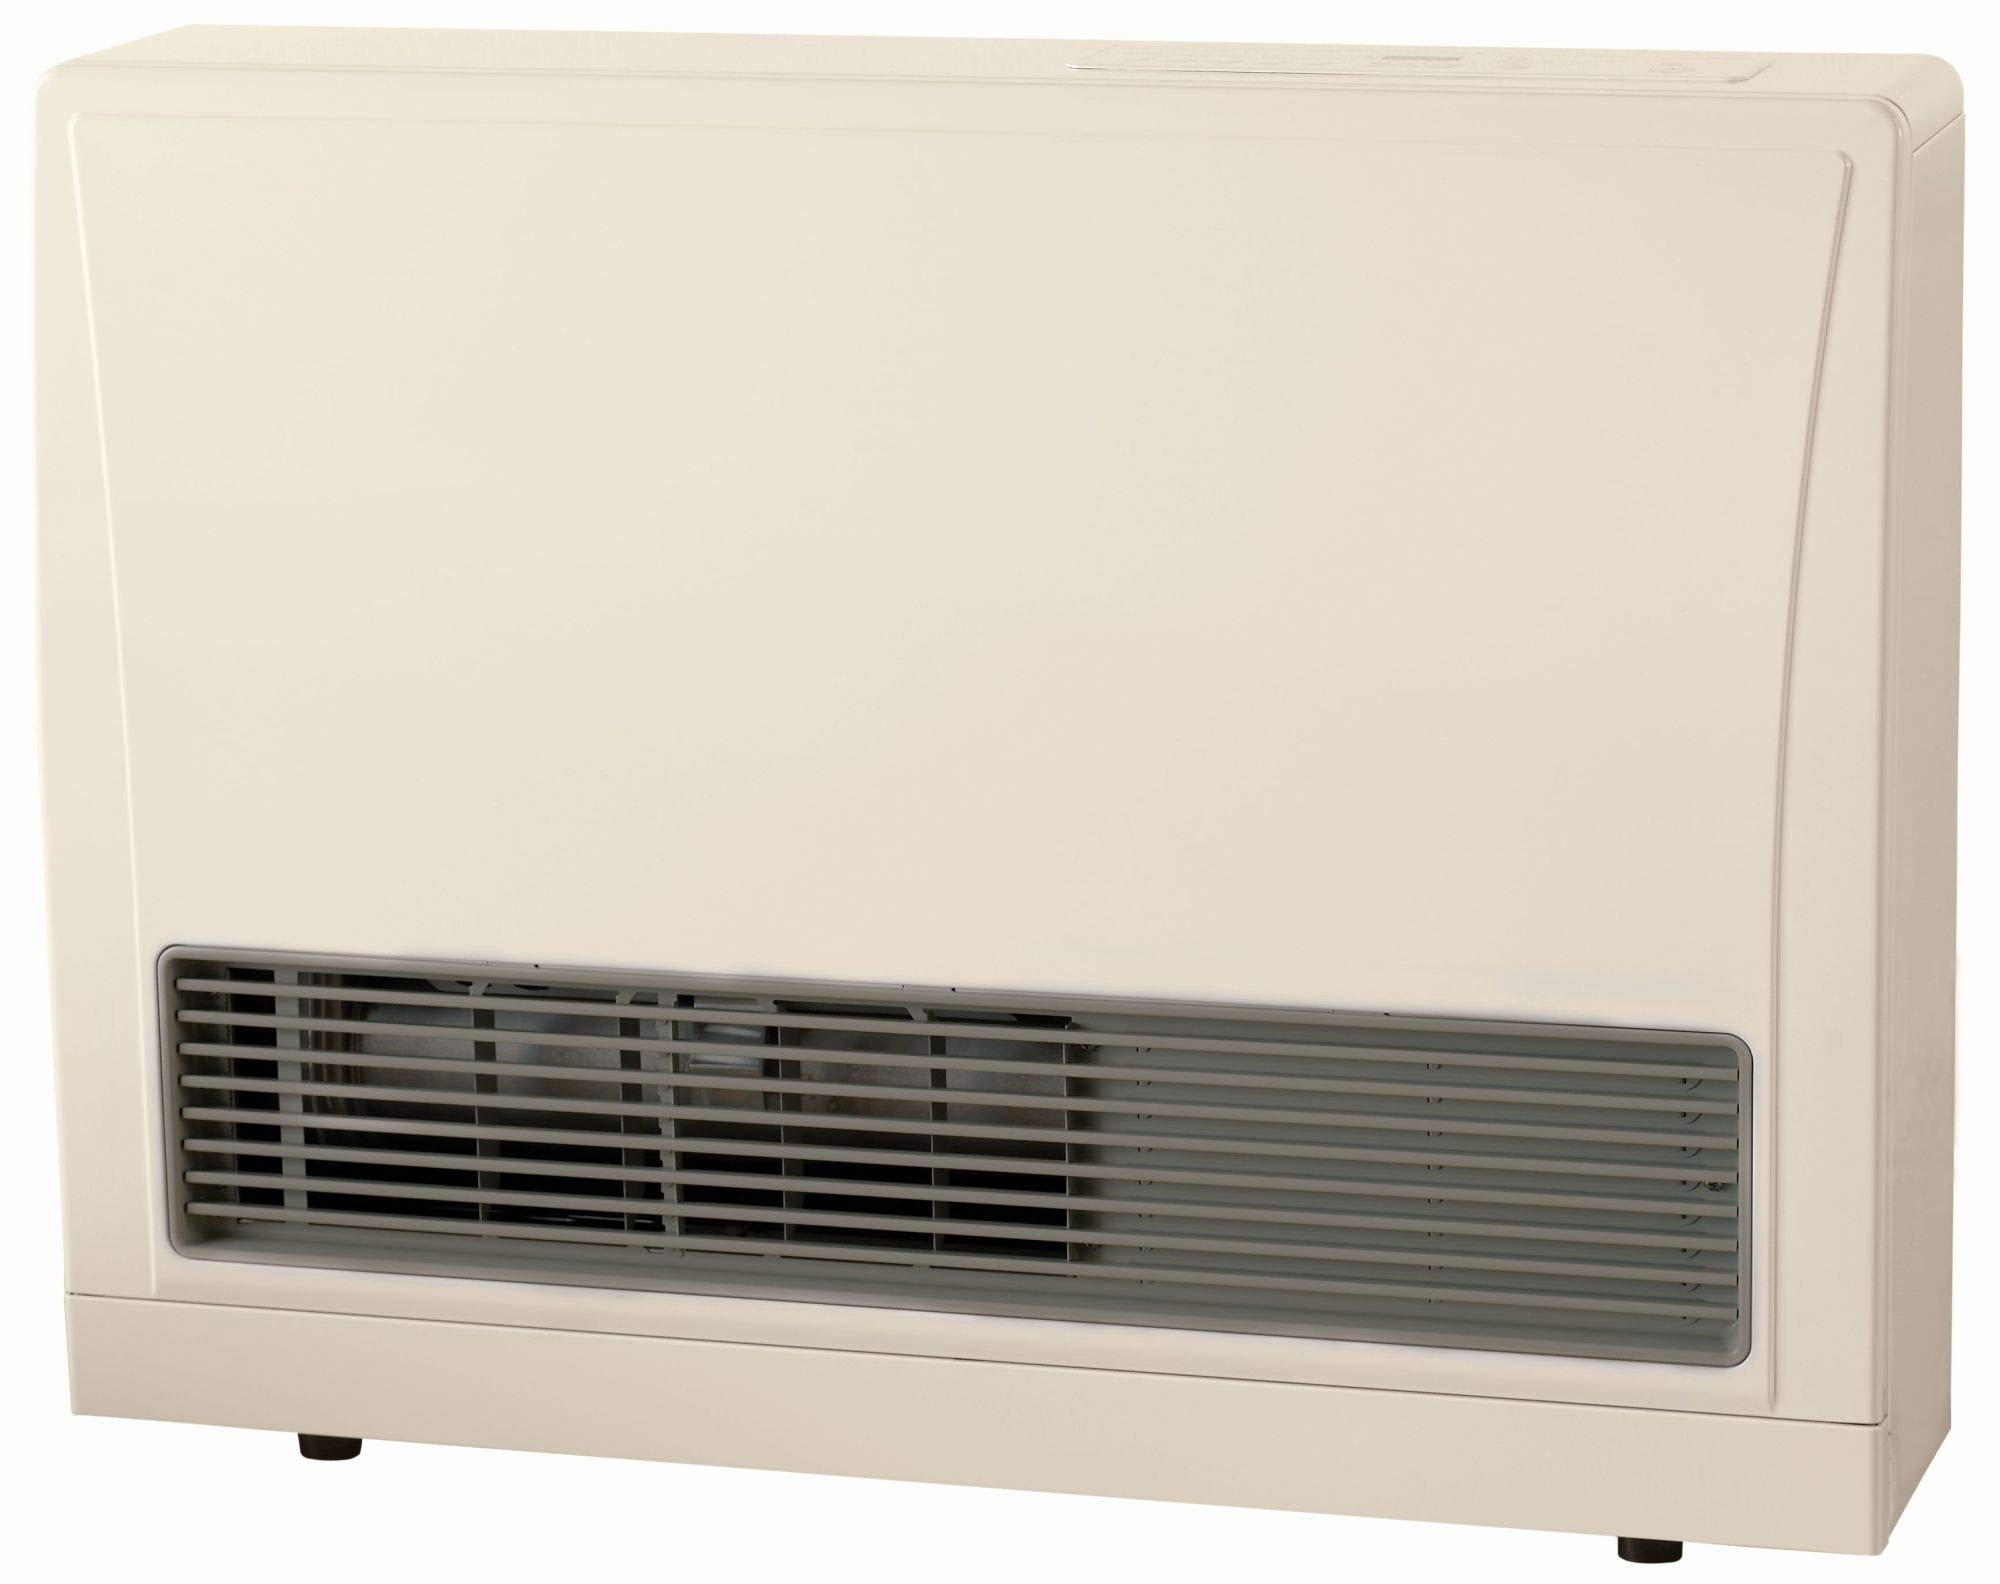 Rinnai direct vent / ex17ctn /natural gas /17k btu 1 rinnai ex17ctn direct vent wall furnace - natural gas input range 8,200 - 16,700 btu/hr capable of heating your whole home or complementing your existing heating system (heating area varies by geographic region and location of install within the home)